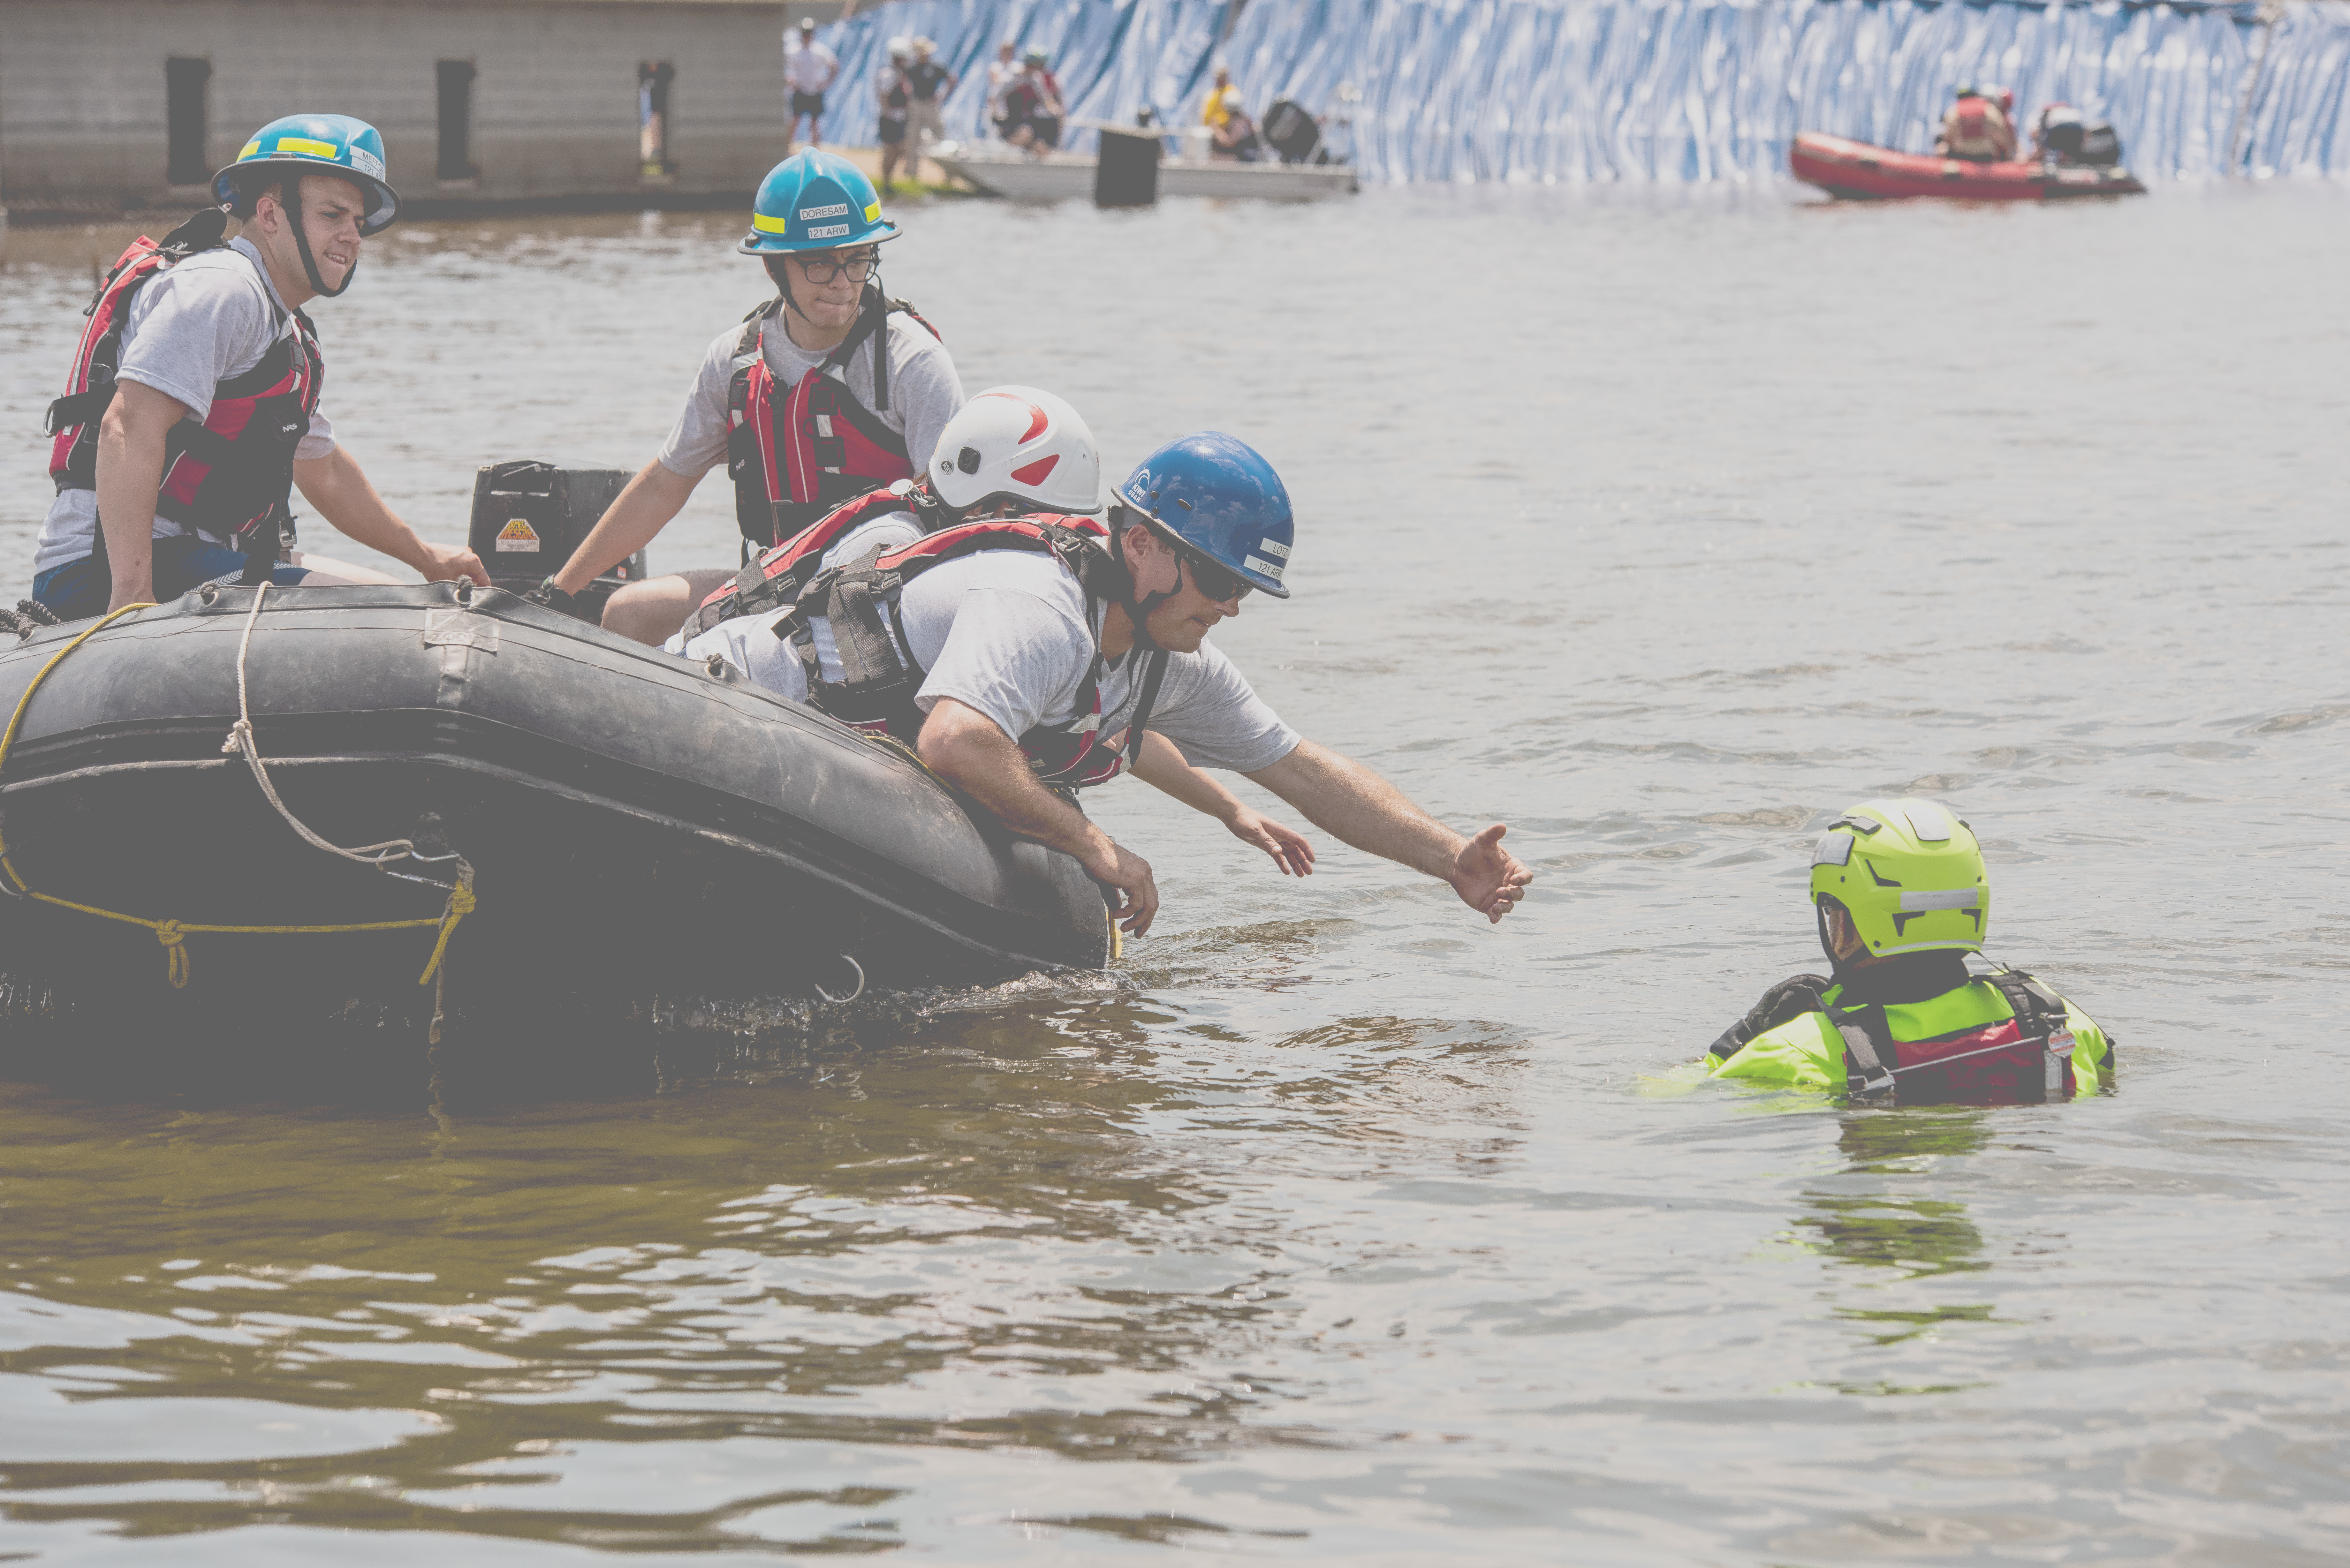 Firefighters practice water rescue at Global Dragon ... on map of georgia google maps, map of ft valley georgia, map of social circle georgia, map of chamblee georgia, map of st simons georgia, map of winston georgia, map of tallulah falls georgia, map of hawkinsville georgia, map of union georgia, map of pulaski county georgia, map of twin city georgia, map of putnam georgia, map of fort oglethorpe georgia, map of woodbine georgia, map of west point georgia, map of colquitt georgia, map of cario georgia, map of ty ty georgia, map of hapeville georgia, map of carter lake georgia,